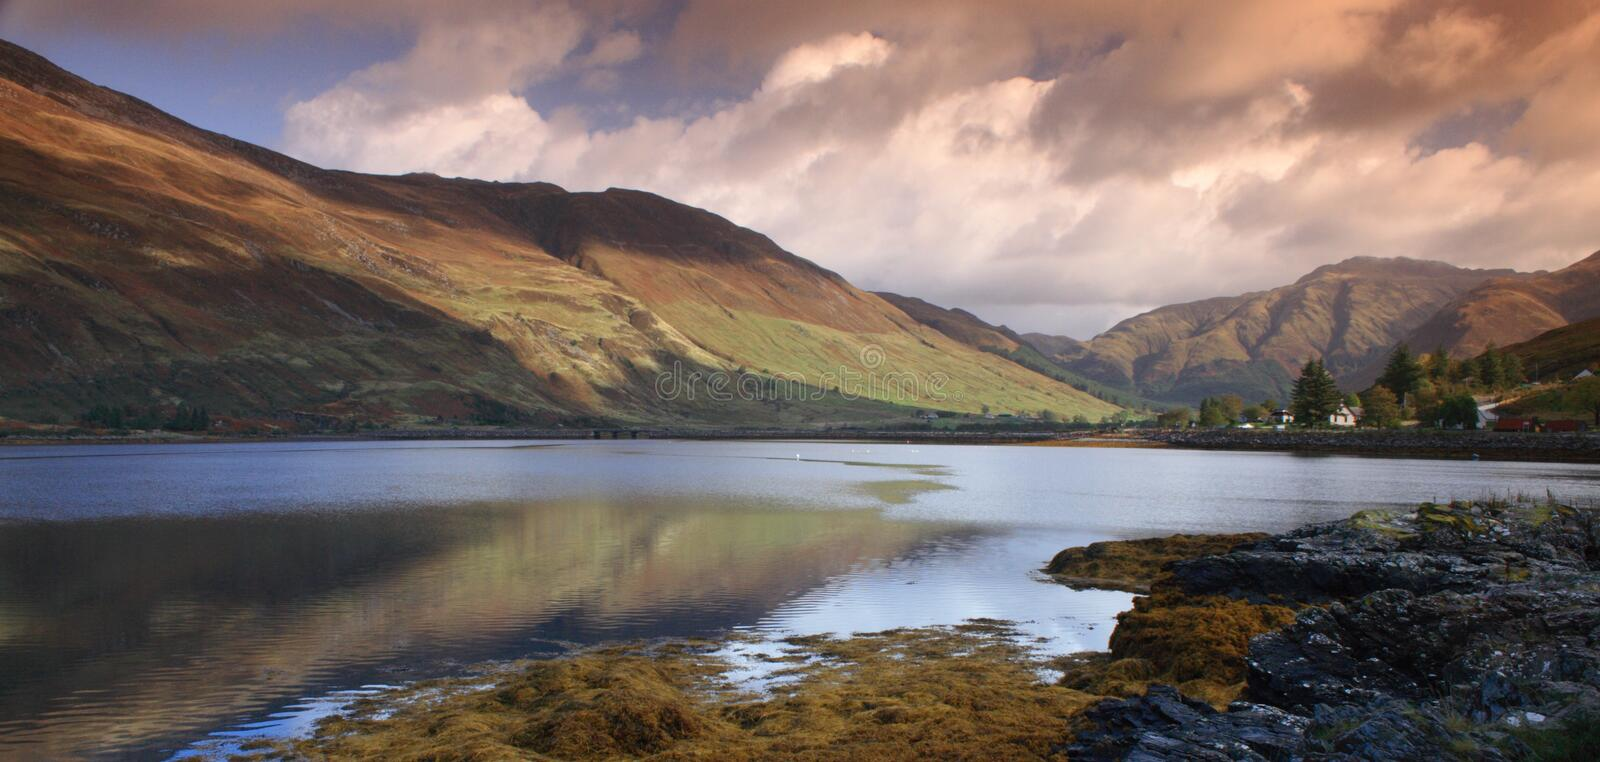 Download Scottish Highlands - Loch Duich Stock Image - Image: 11200999